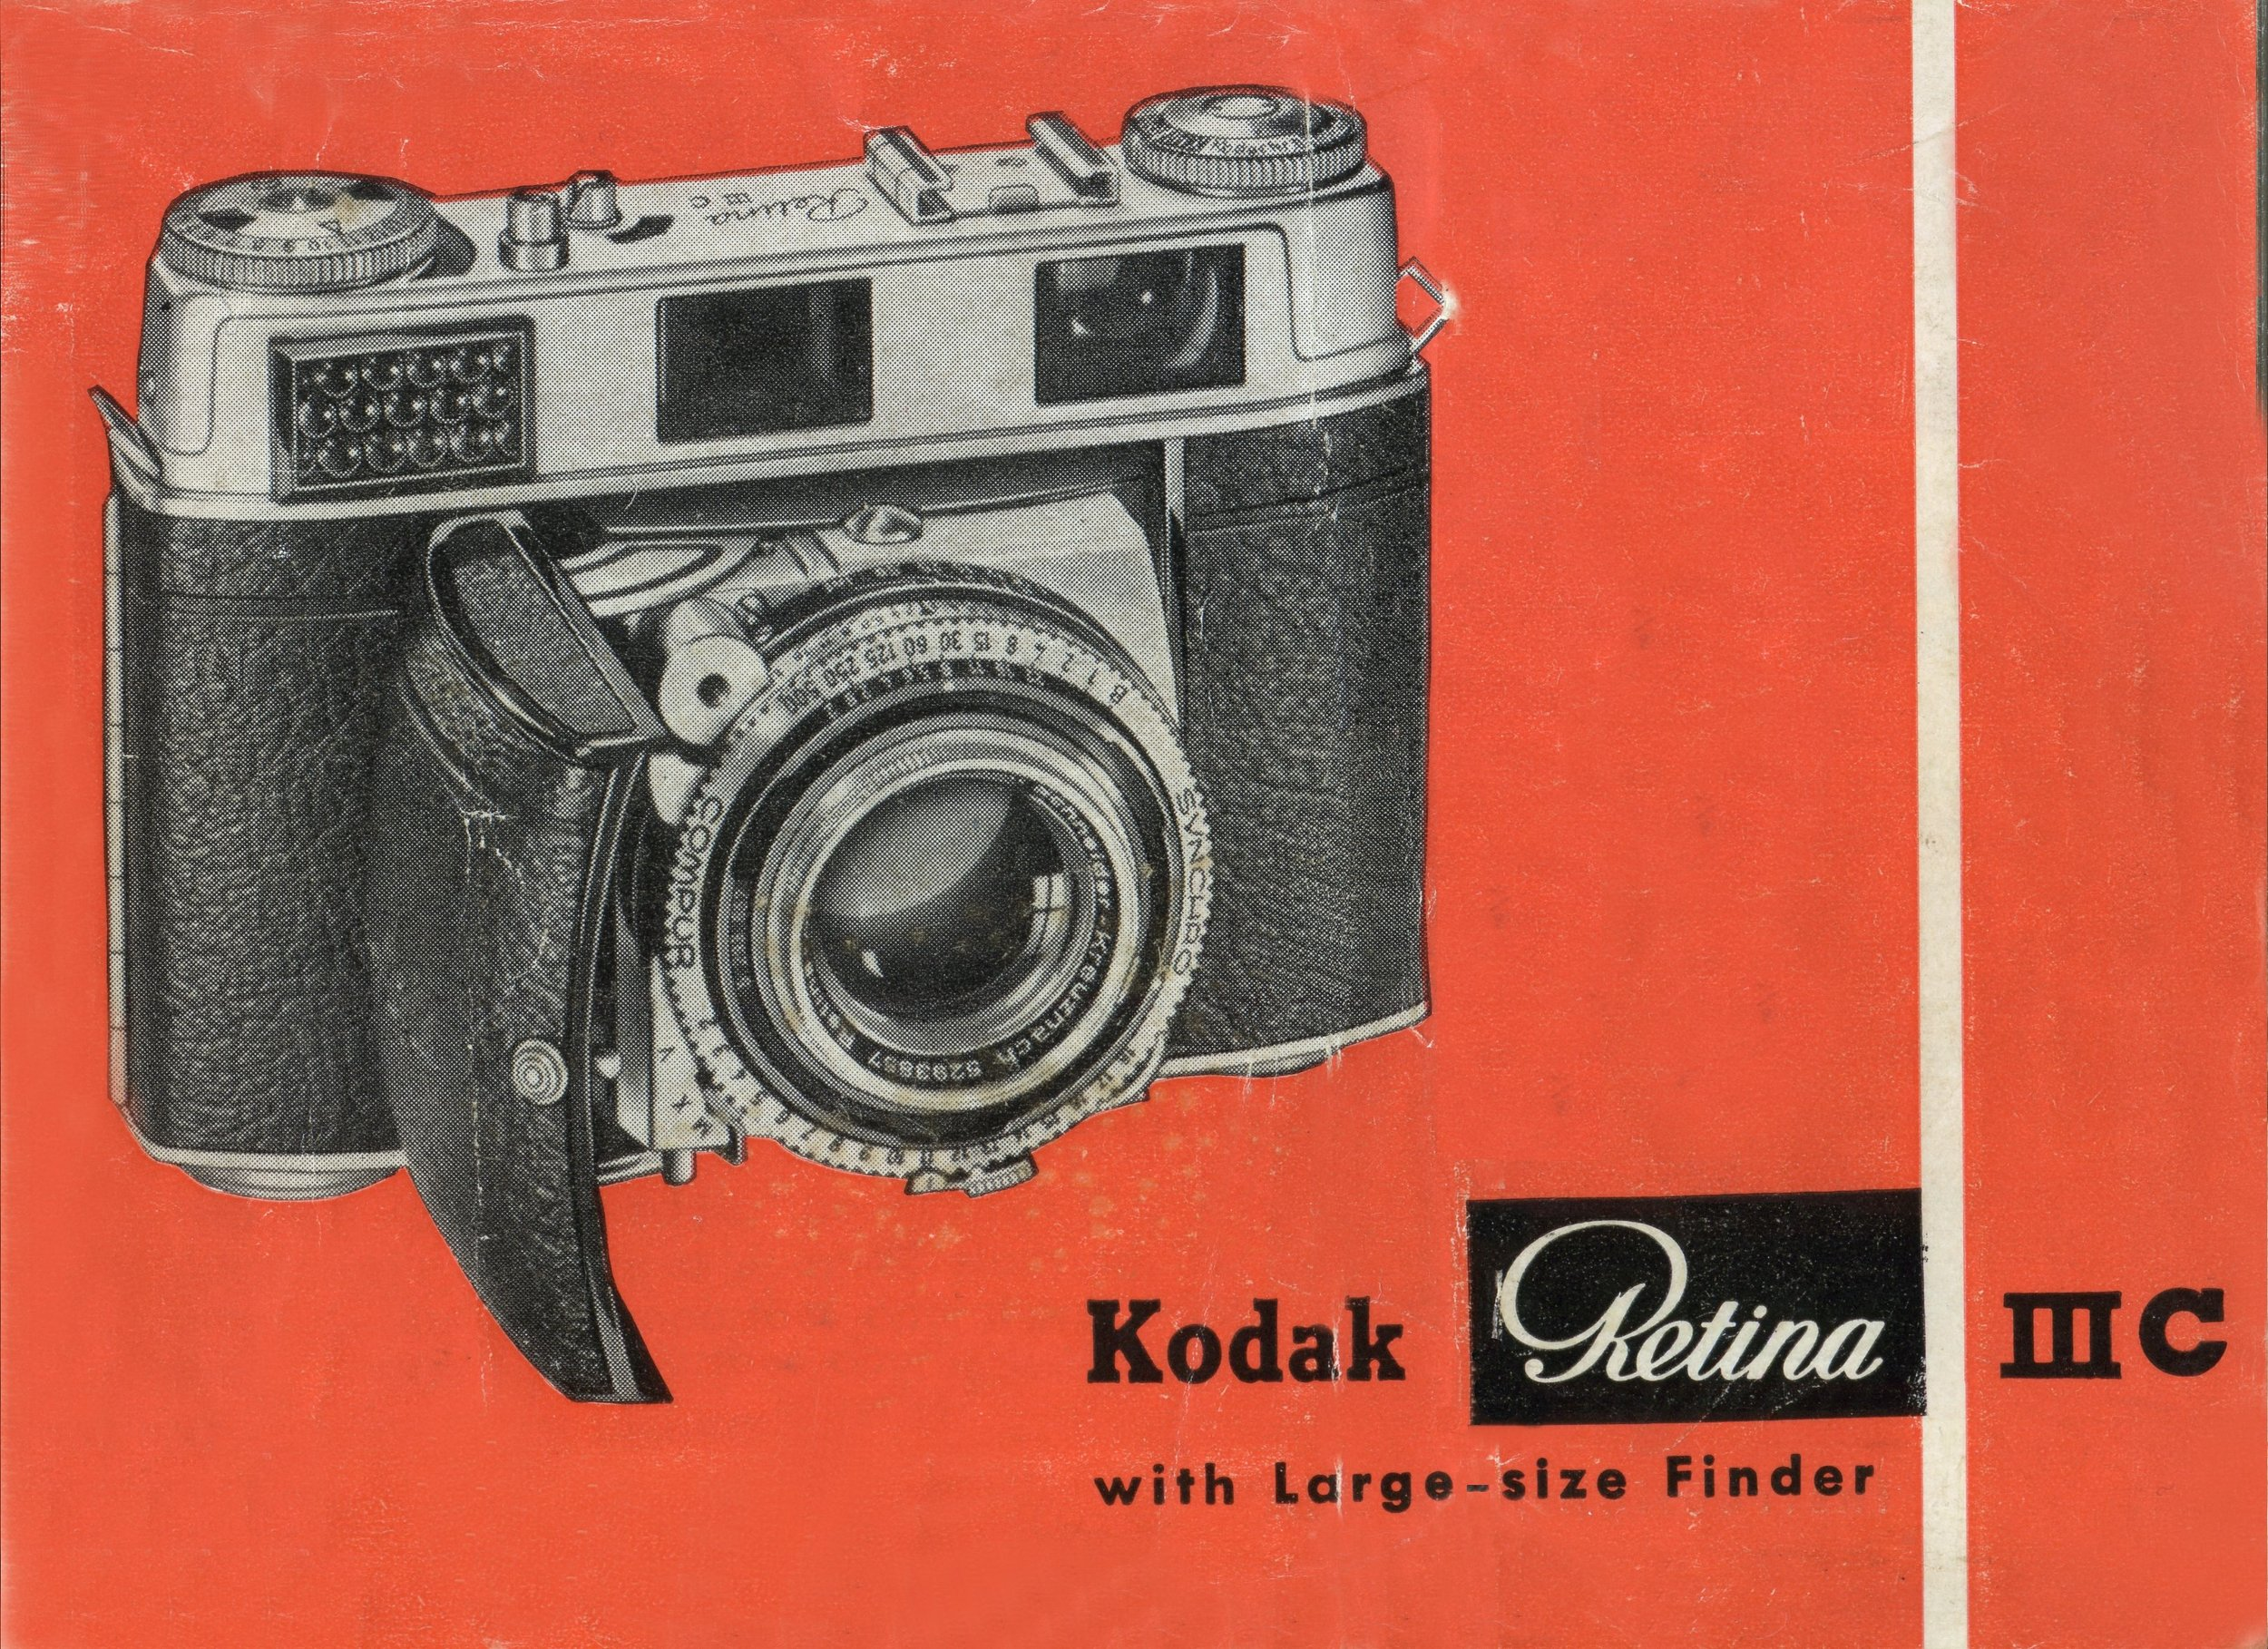 There were a few sub-versions of the IIIc, all with small additions or feature changes. The most sought after is the IIIC (large C) which has a larger viewfinder. It often retails for $100 more than the ordinary IIIc. Otherwise, little else was changed.